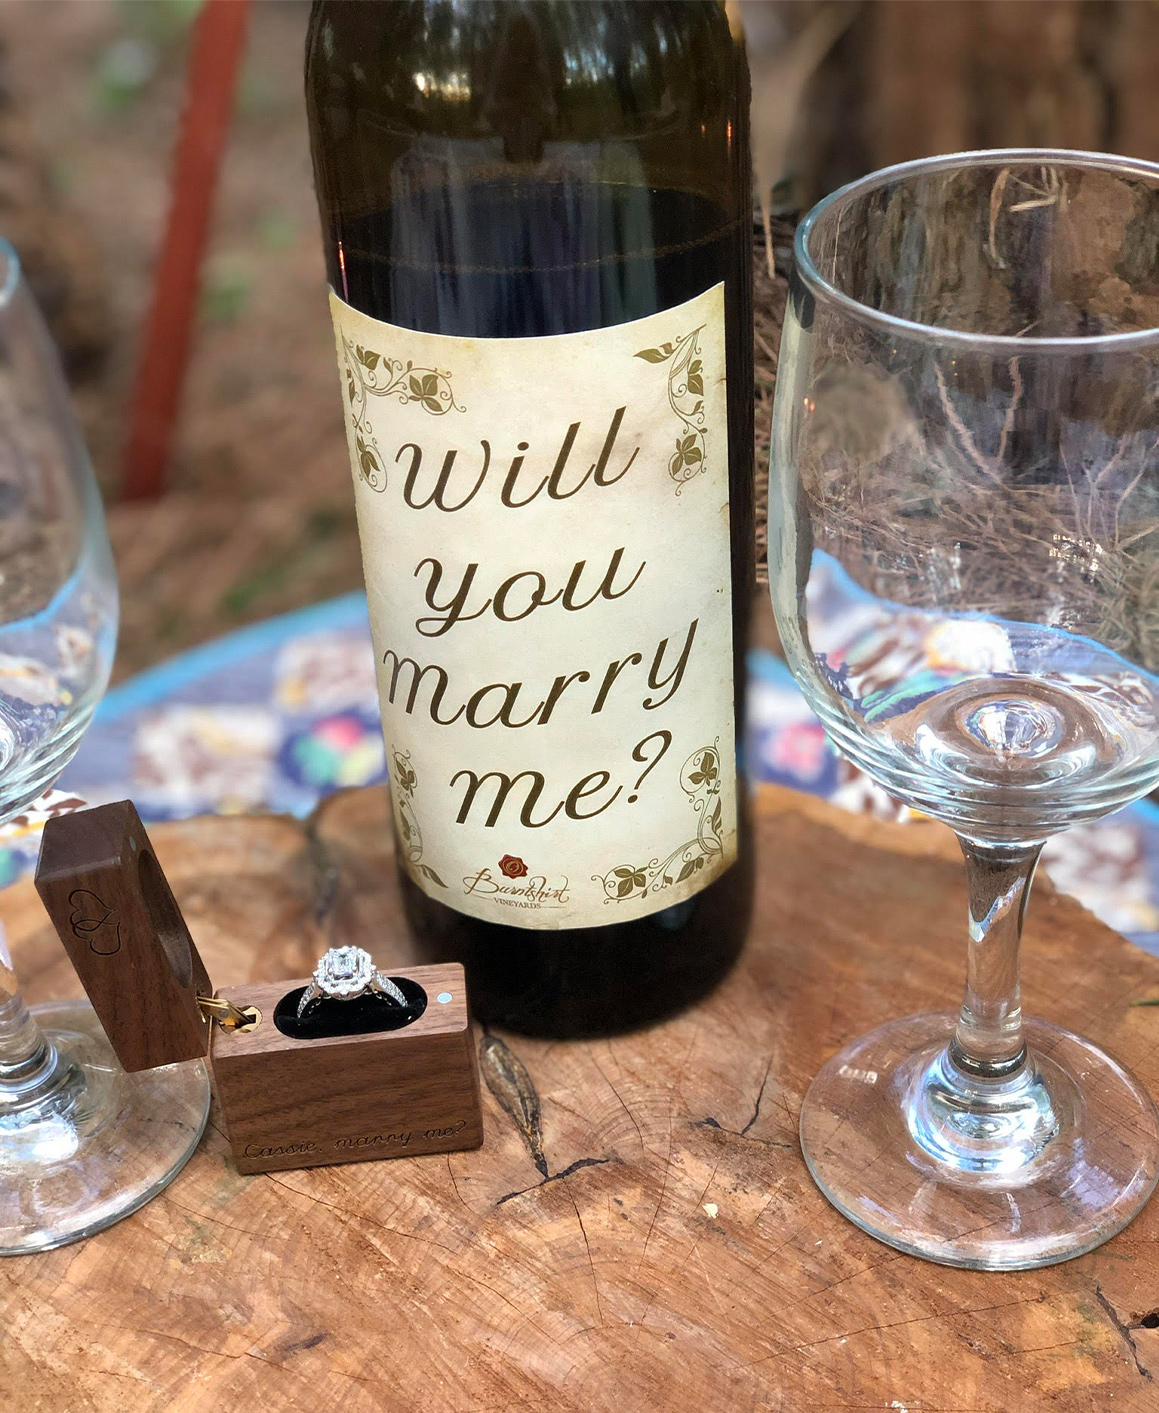 A custom wine bottle, perfect for a proposal